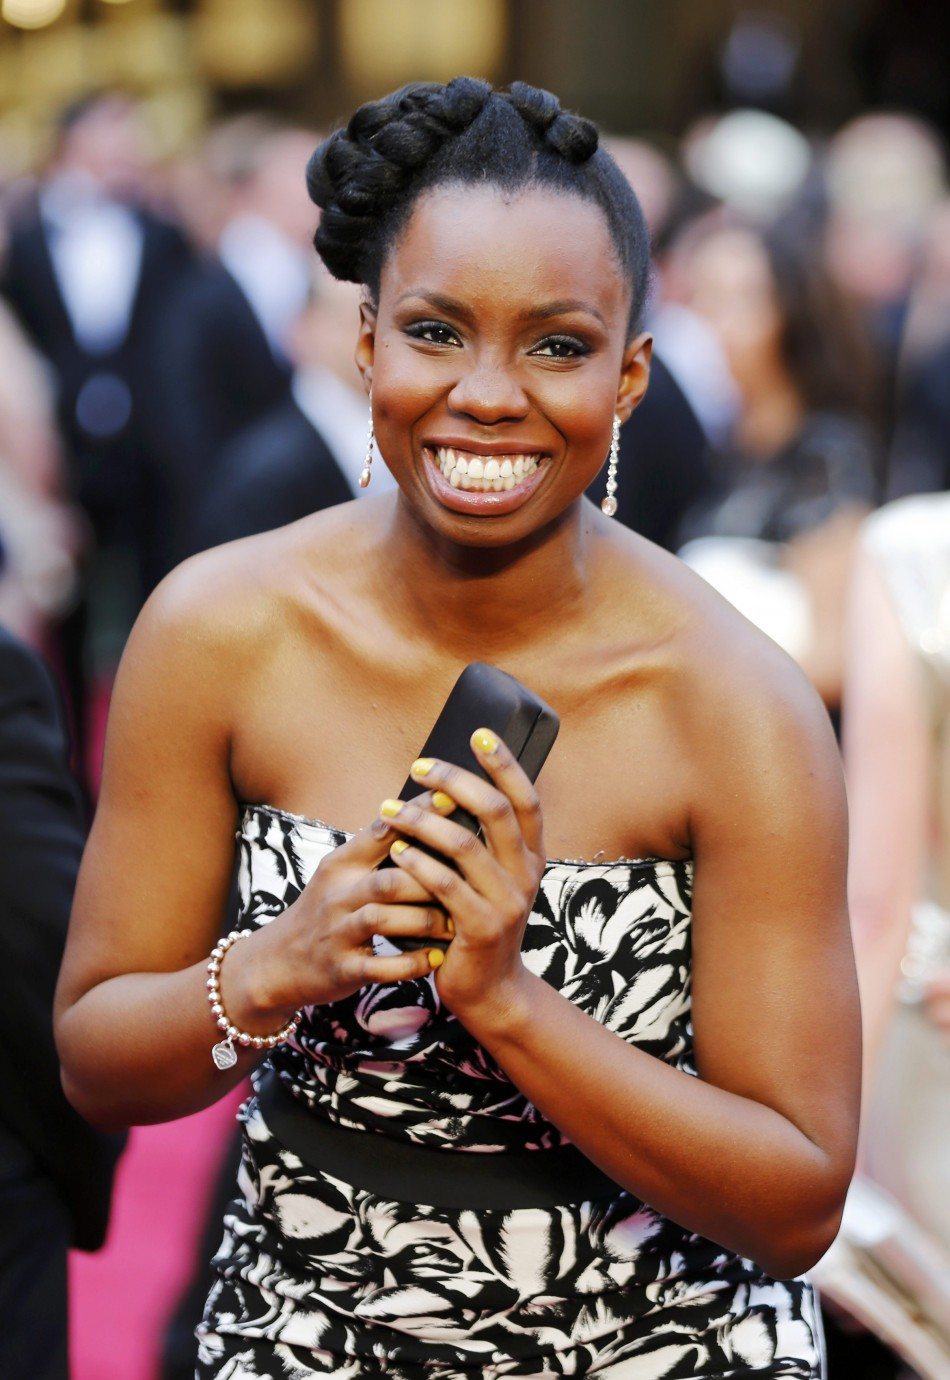 Adepero Oduye at the 2014 Vanity Fair Oscar Party